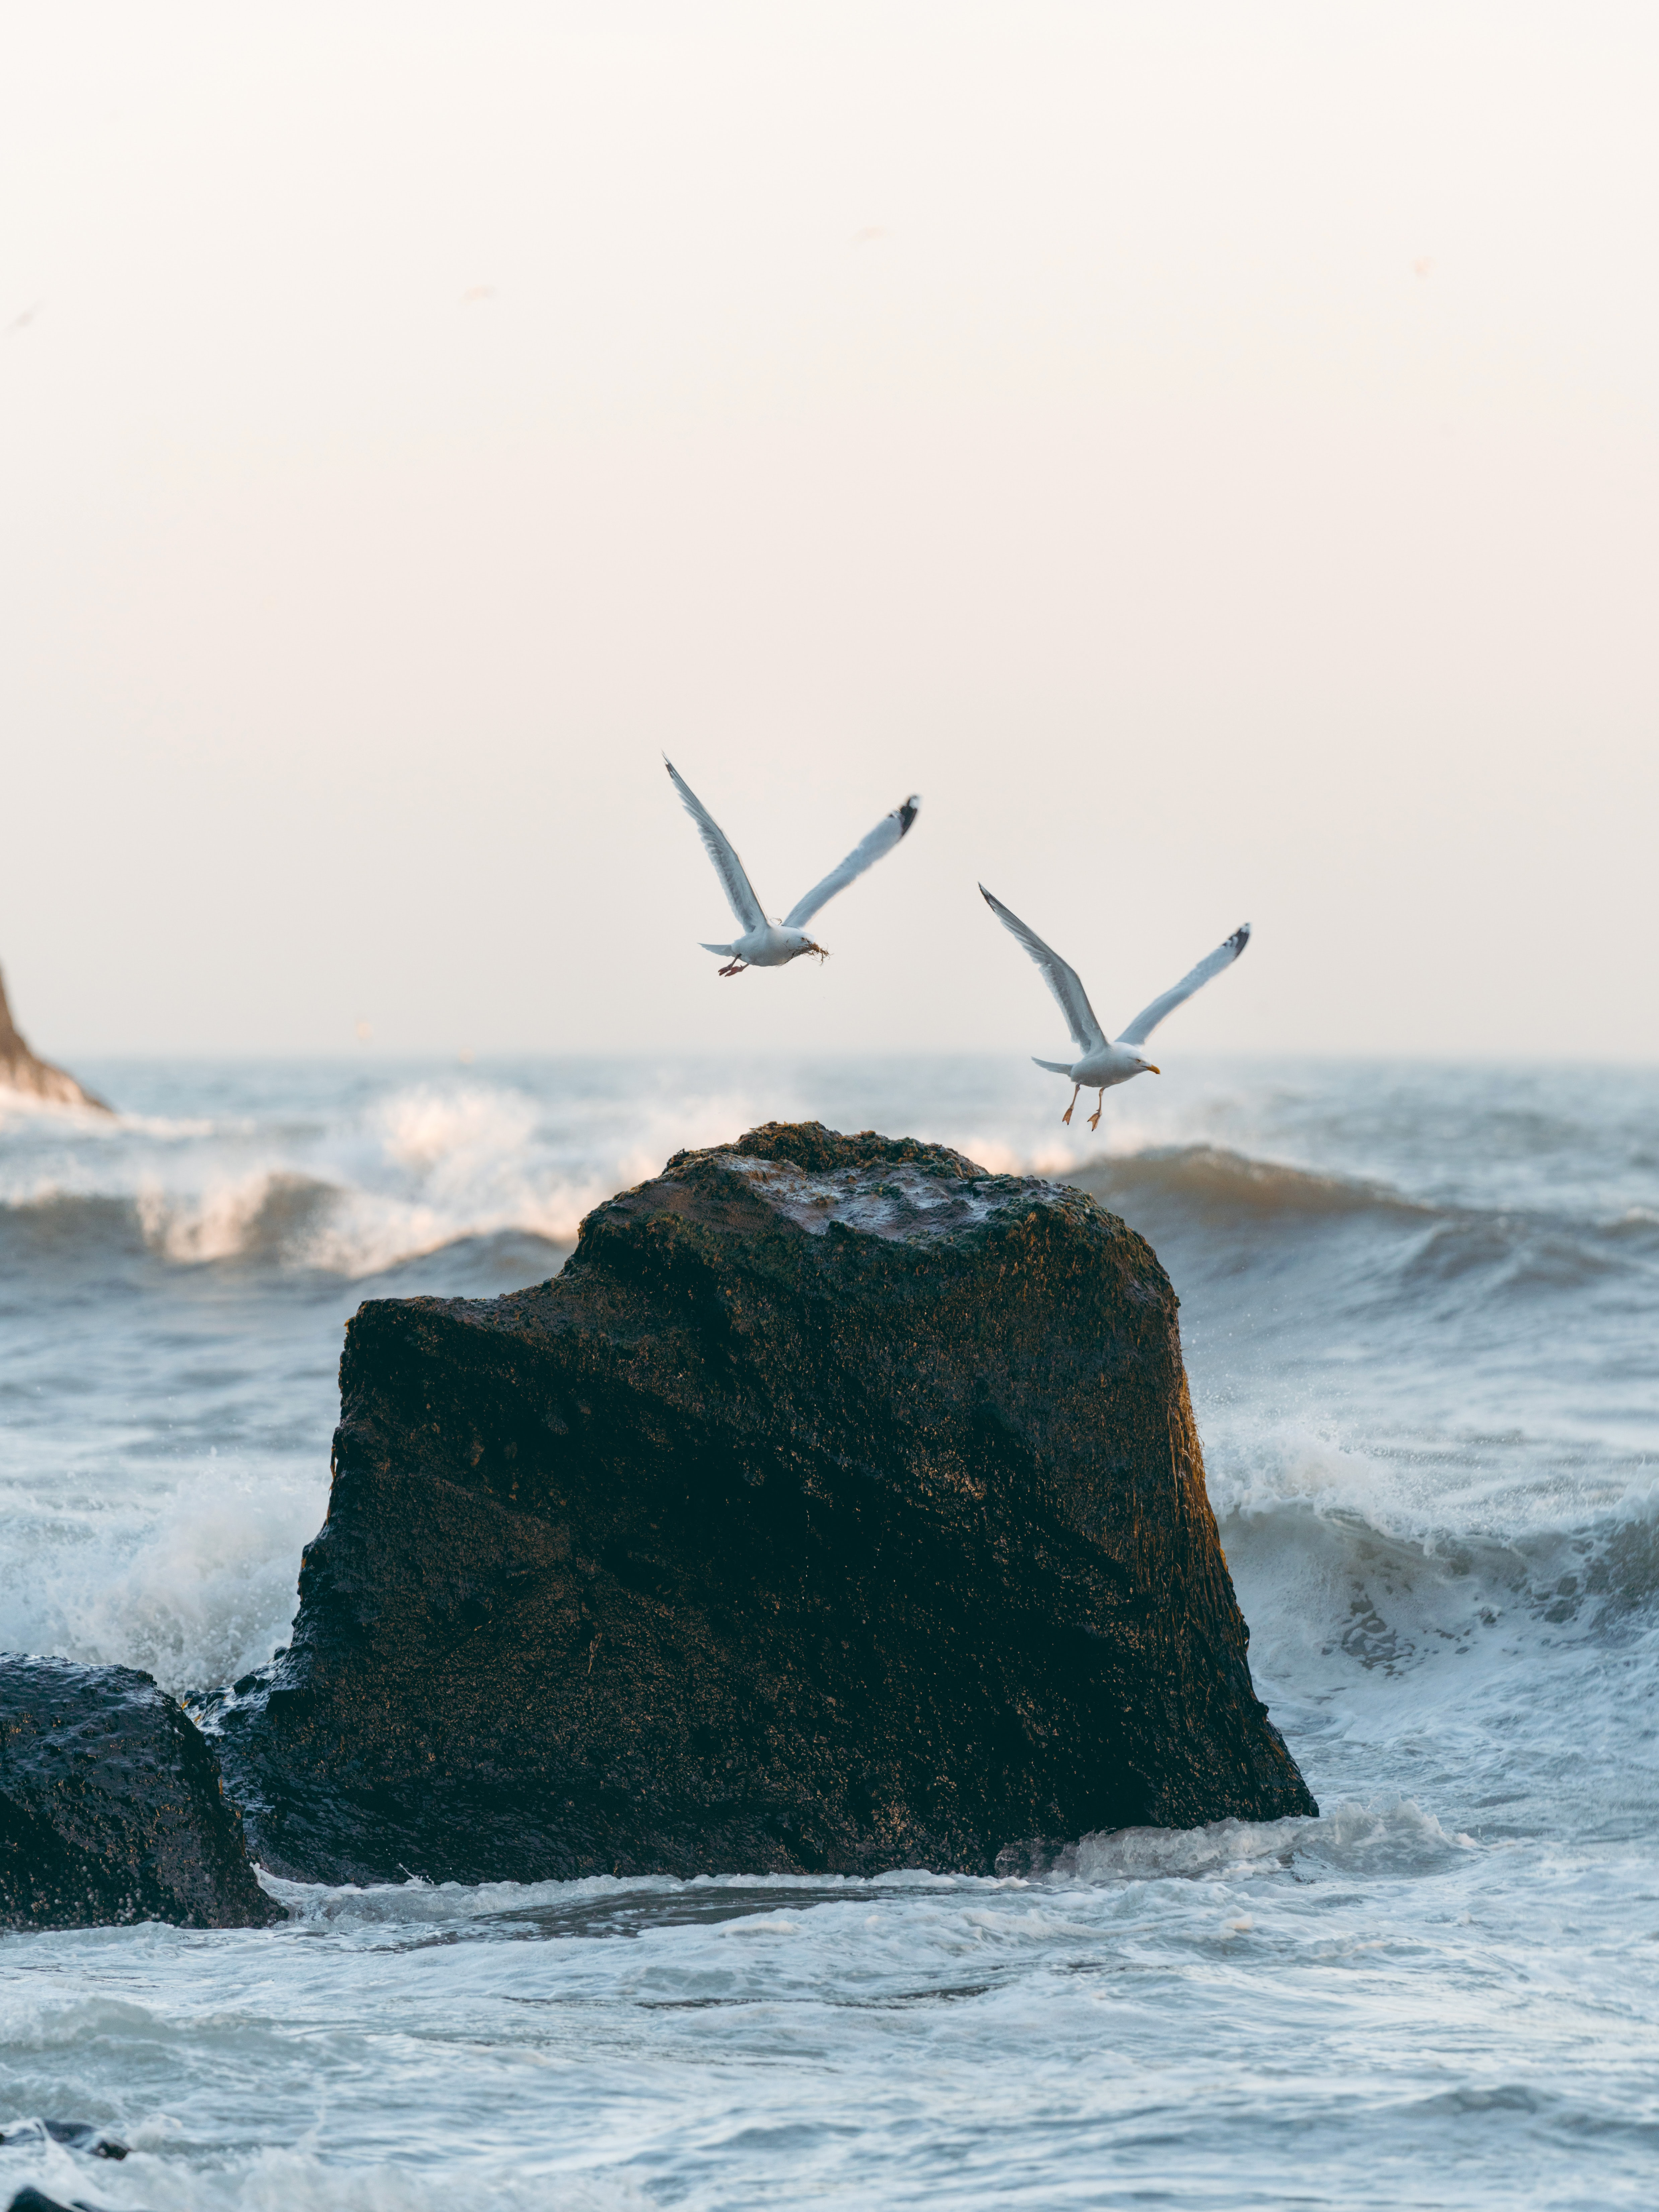 76065 download wallpaper Nature, Rocks, Sea, Spray, Waves, Birds, Seagulls screensavers and pictures for free